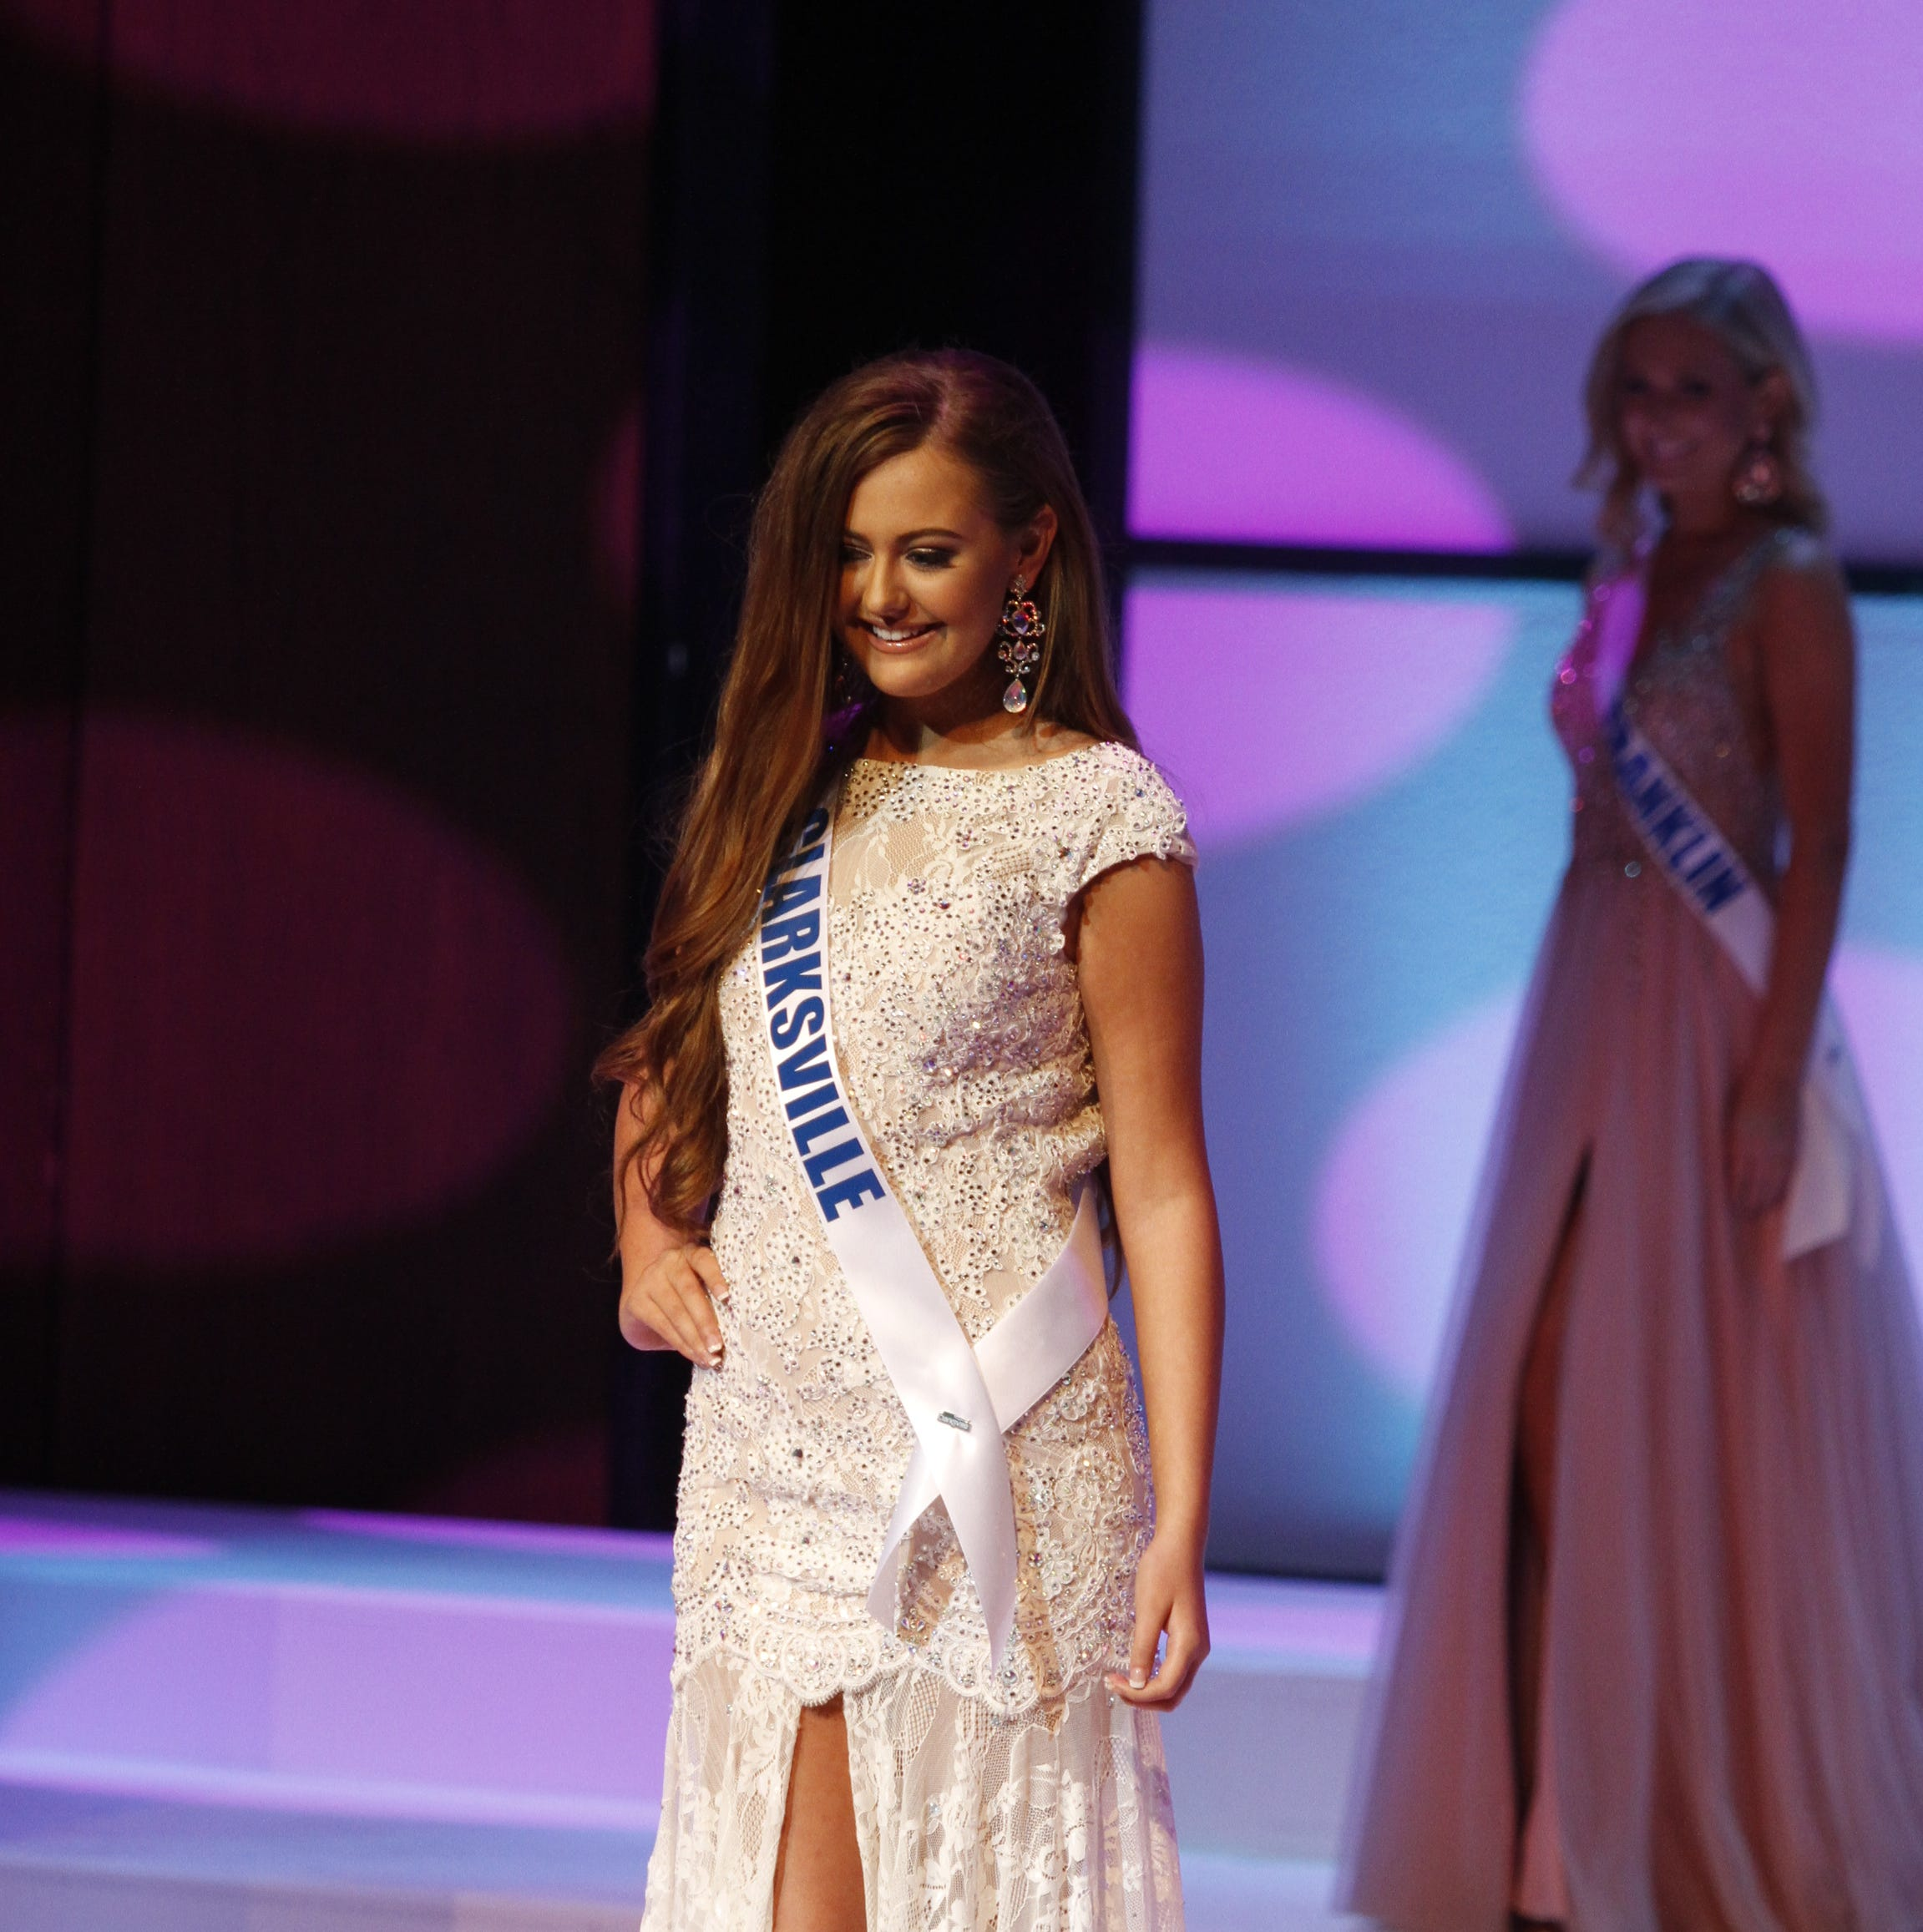 Miss Tennessee USA pageants begin in Clarksville